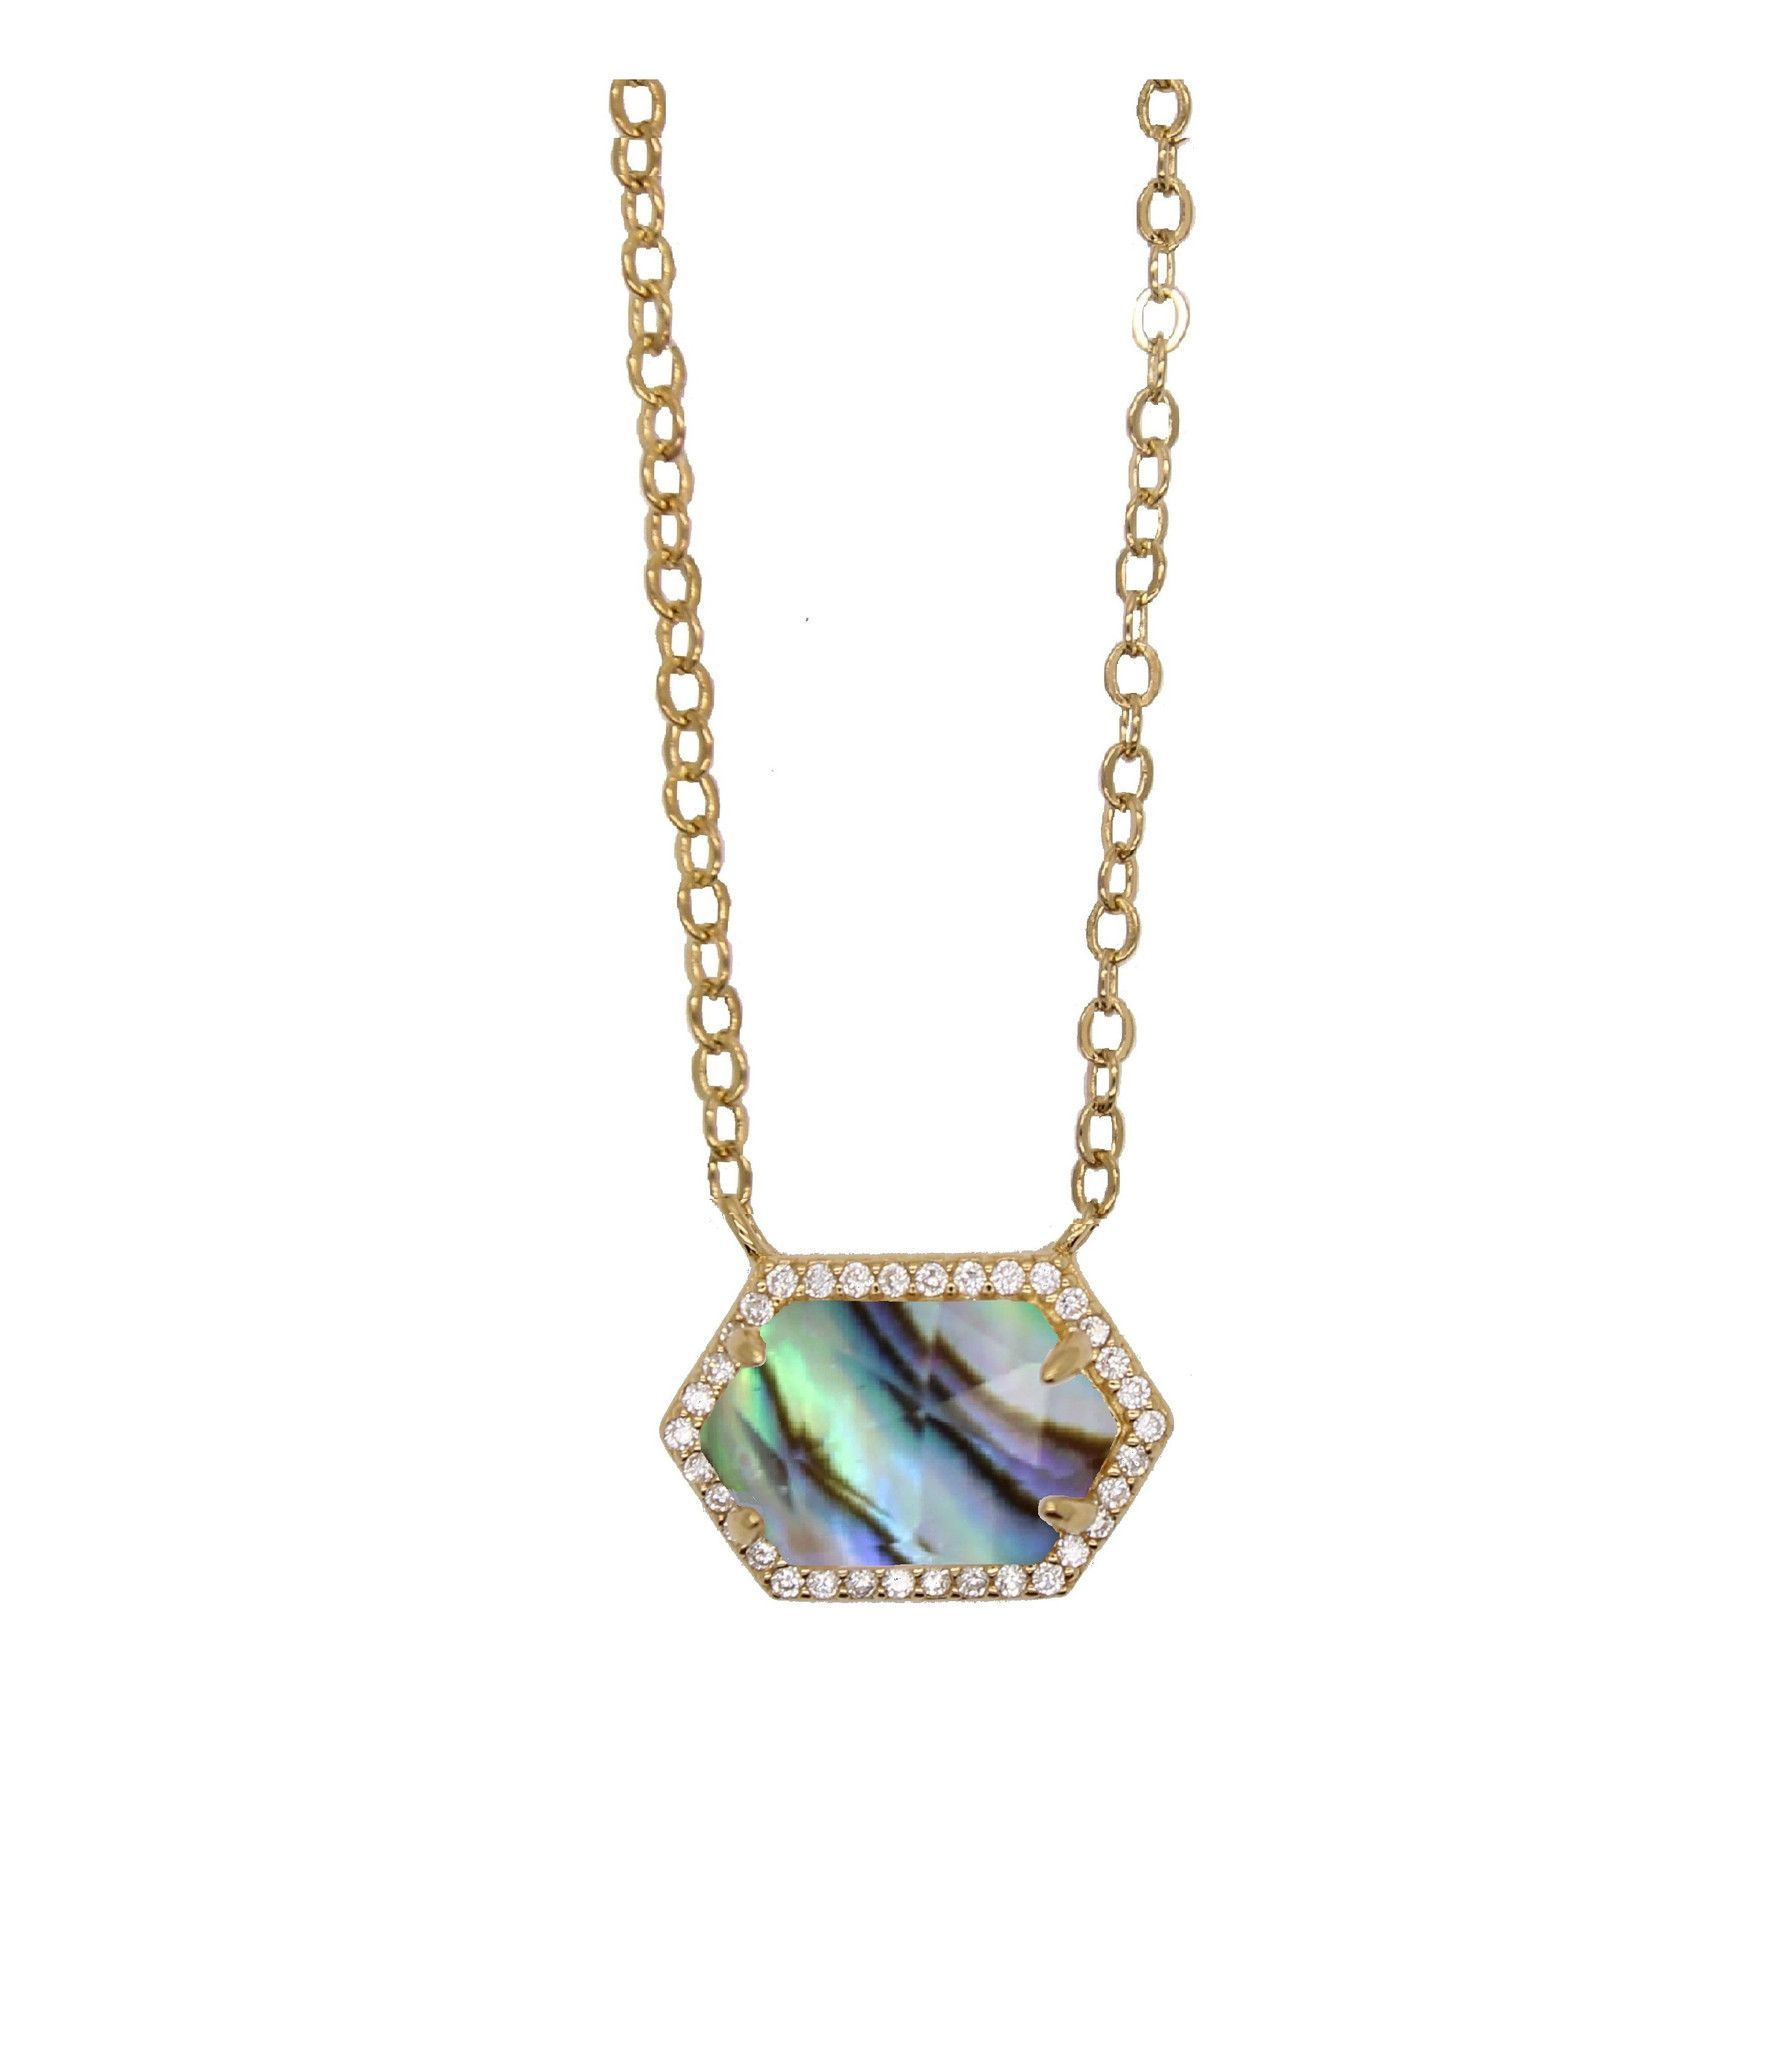 Hexagon Pave Necklace - Abalone